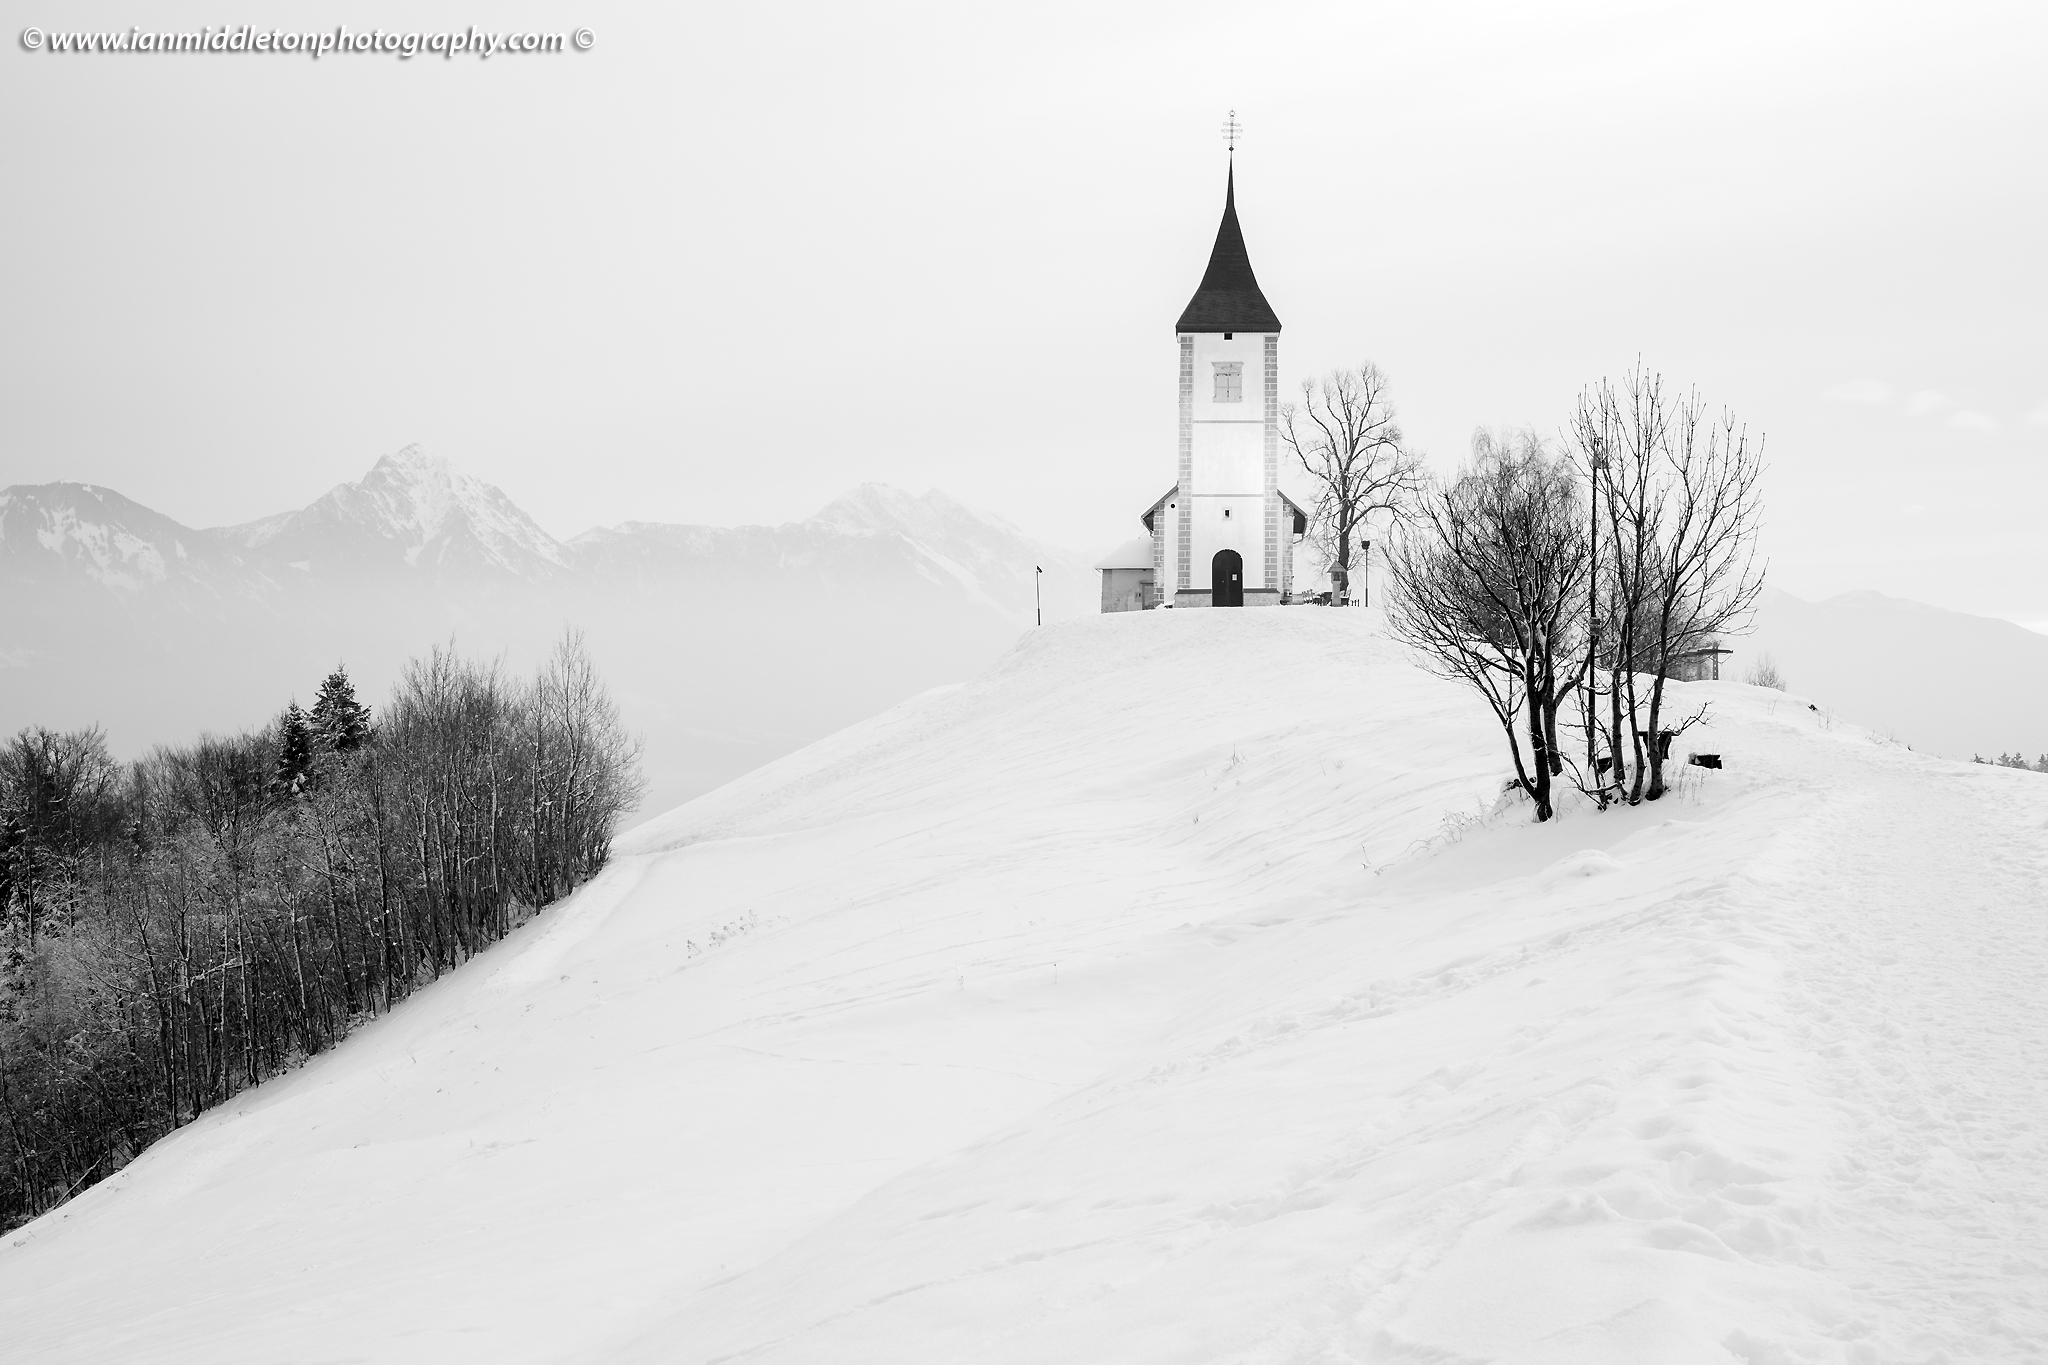 Jamnik church of Saints Primus and Felician in winter, perched on a hill on the Jelovica Plateau with the kamnik alps and Storzic mountain in the background, Slovenia.